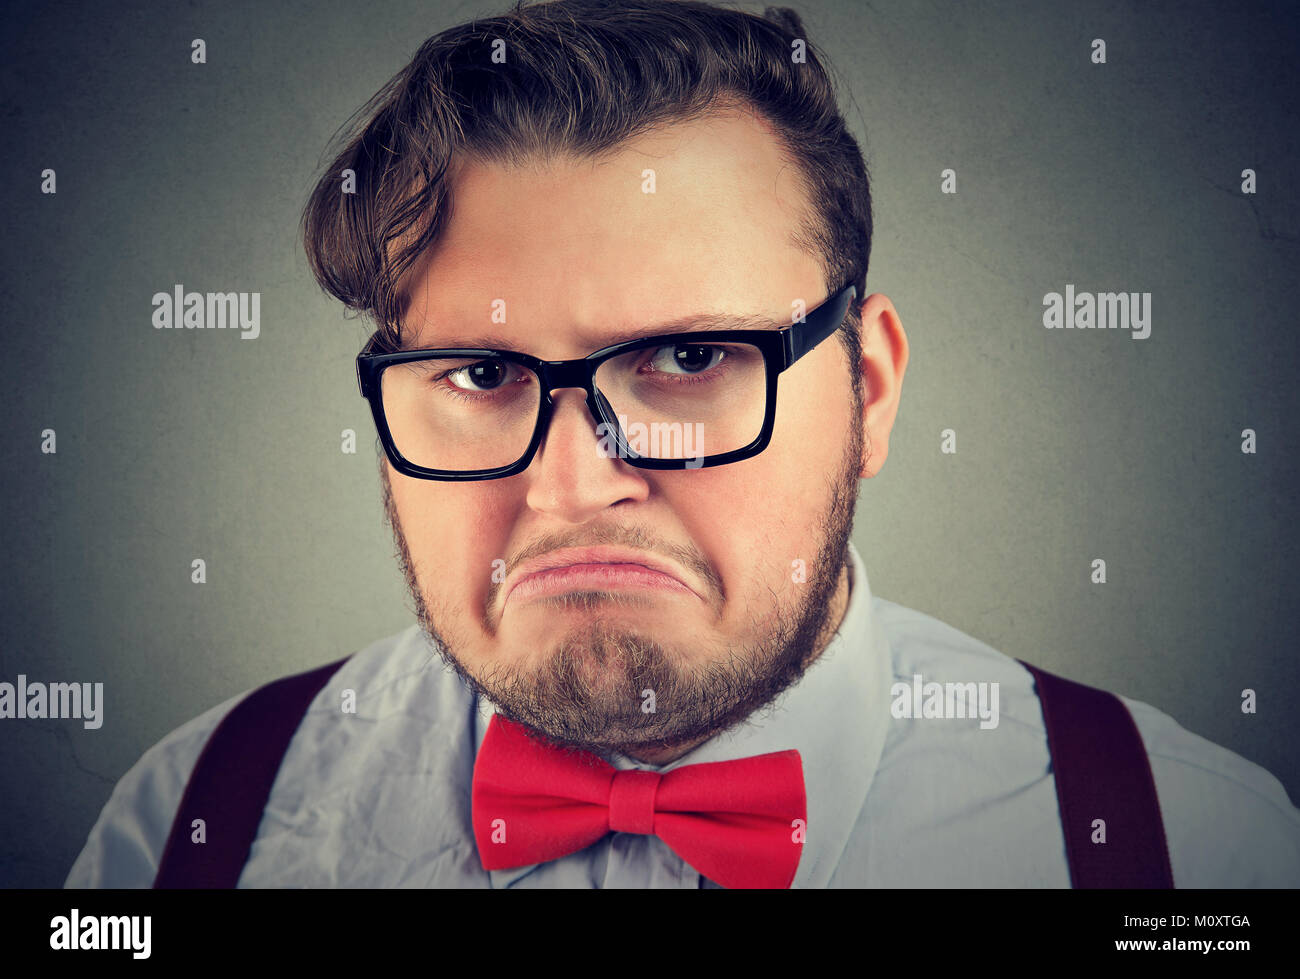 Portrait of chunky man in eyeglasses looking offended and gloomy posing at camera. - Stock Image